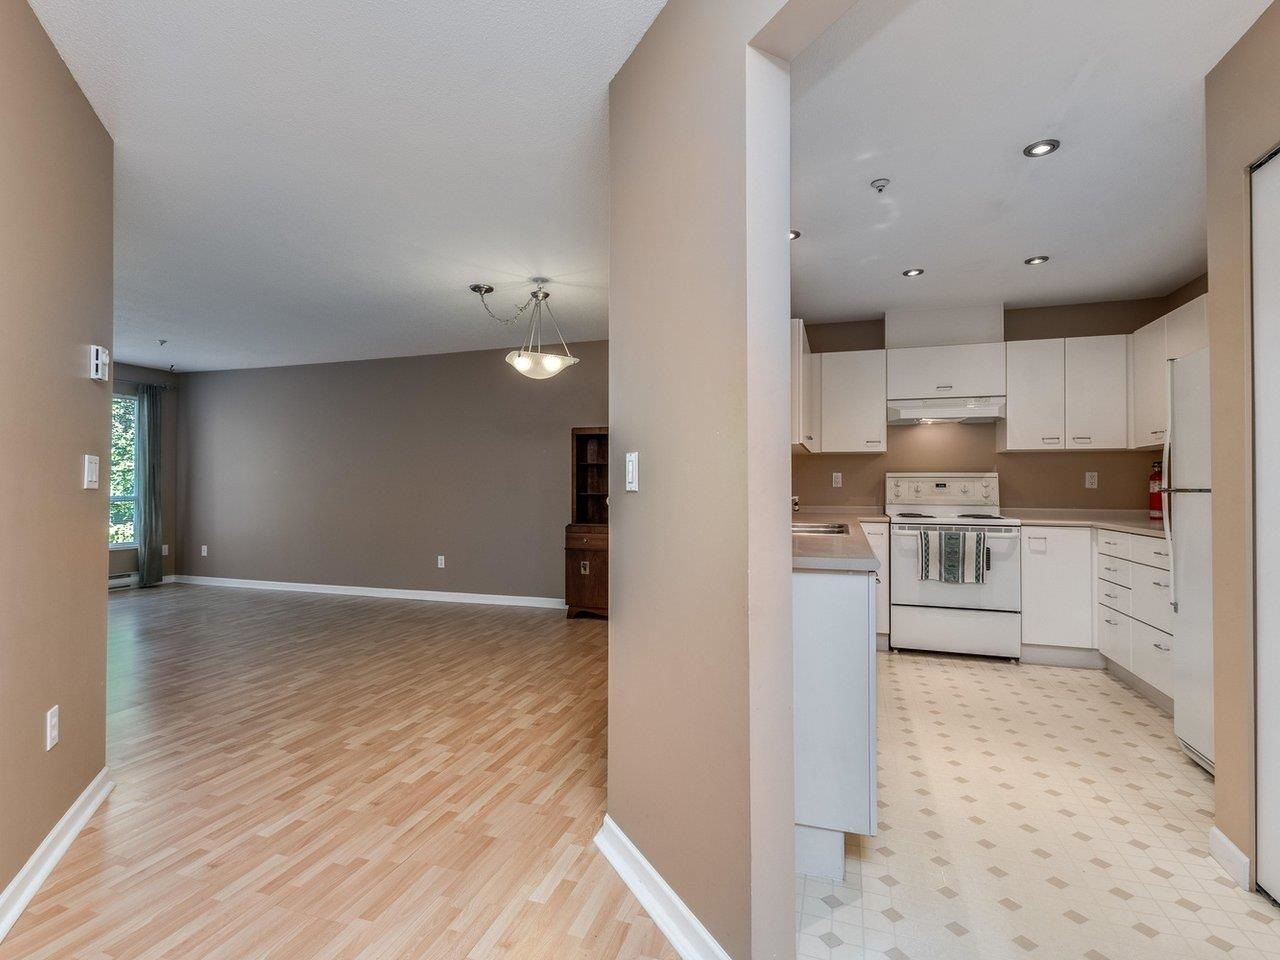 """Photo 4: Photos: 320 1252 TOWN CENTRE Boulevard in Coquitlam: Canyon Springs Condo for sale in """"The Kennedy"""" : MLS®# R2595291"""